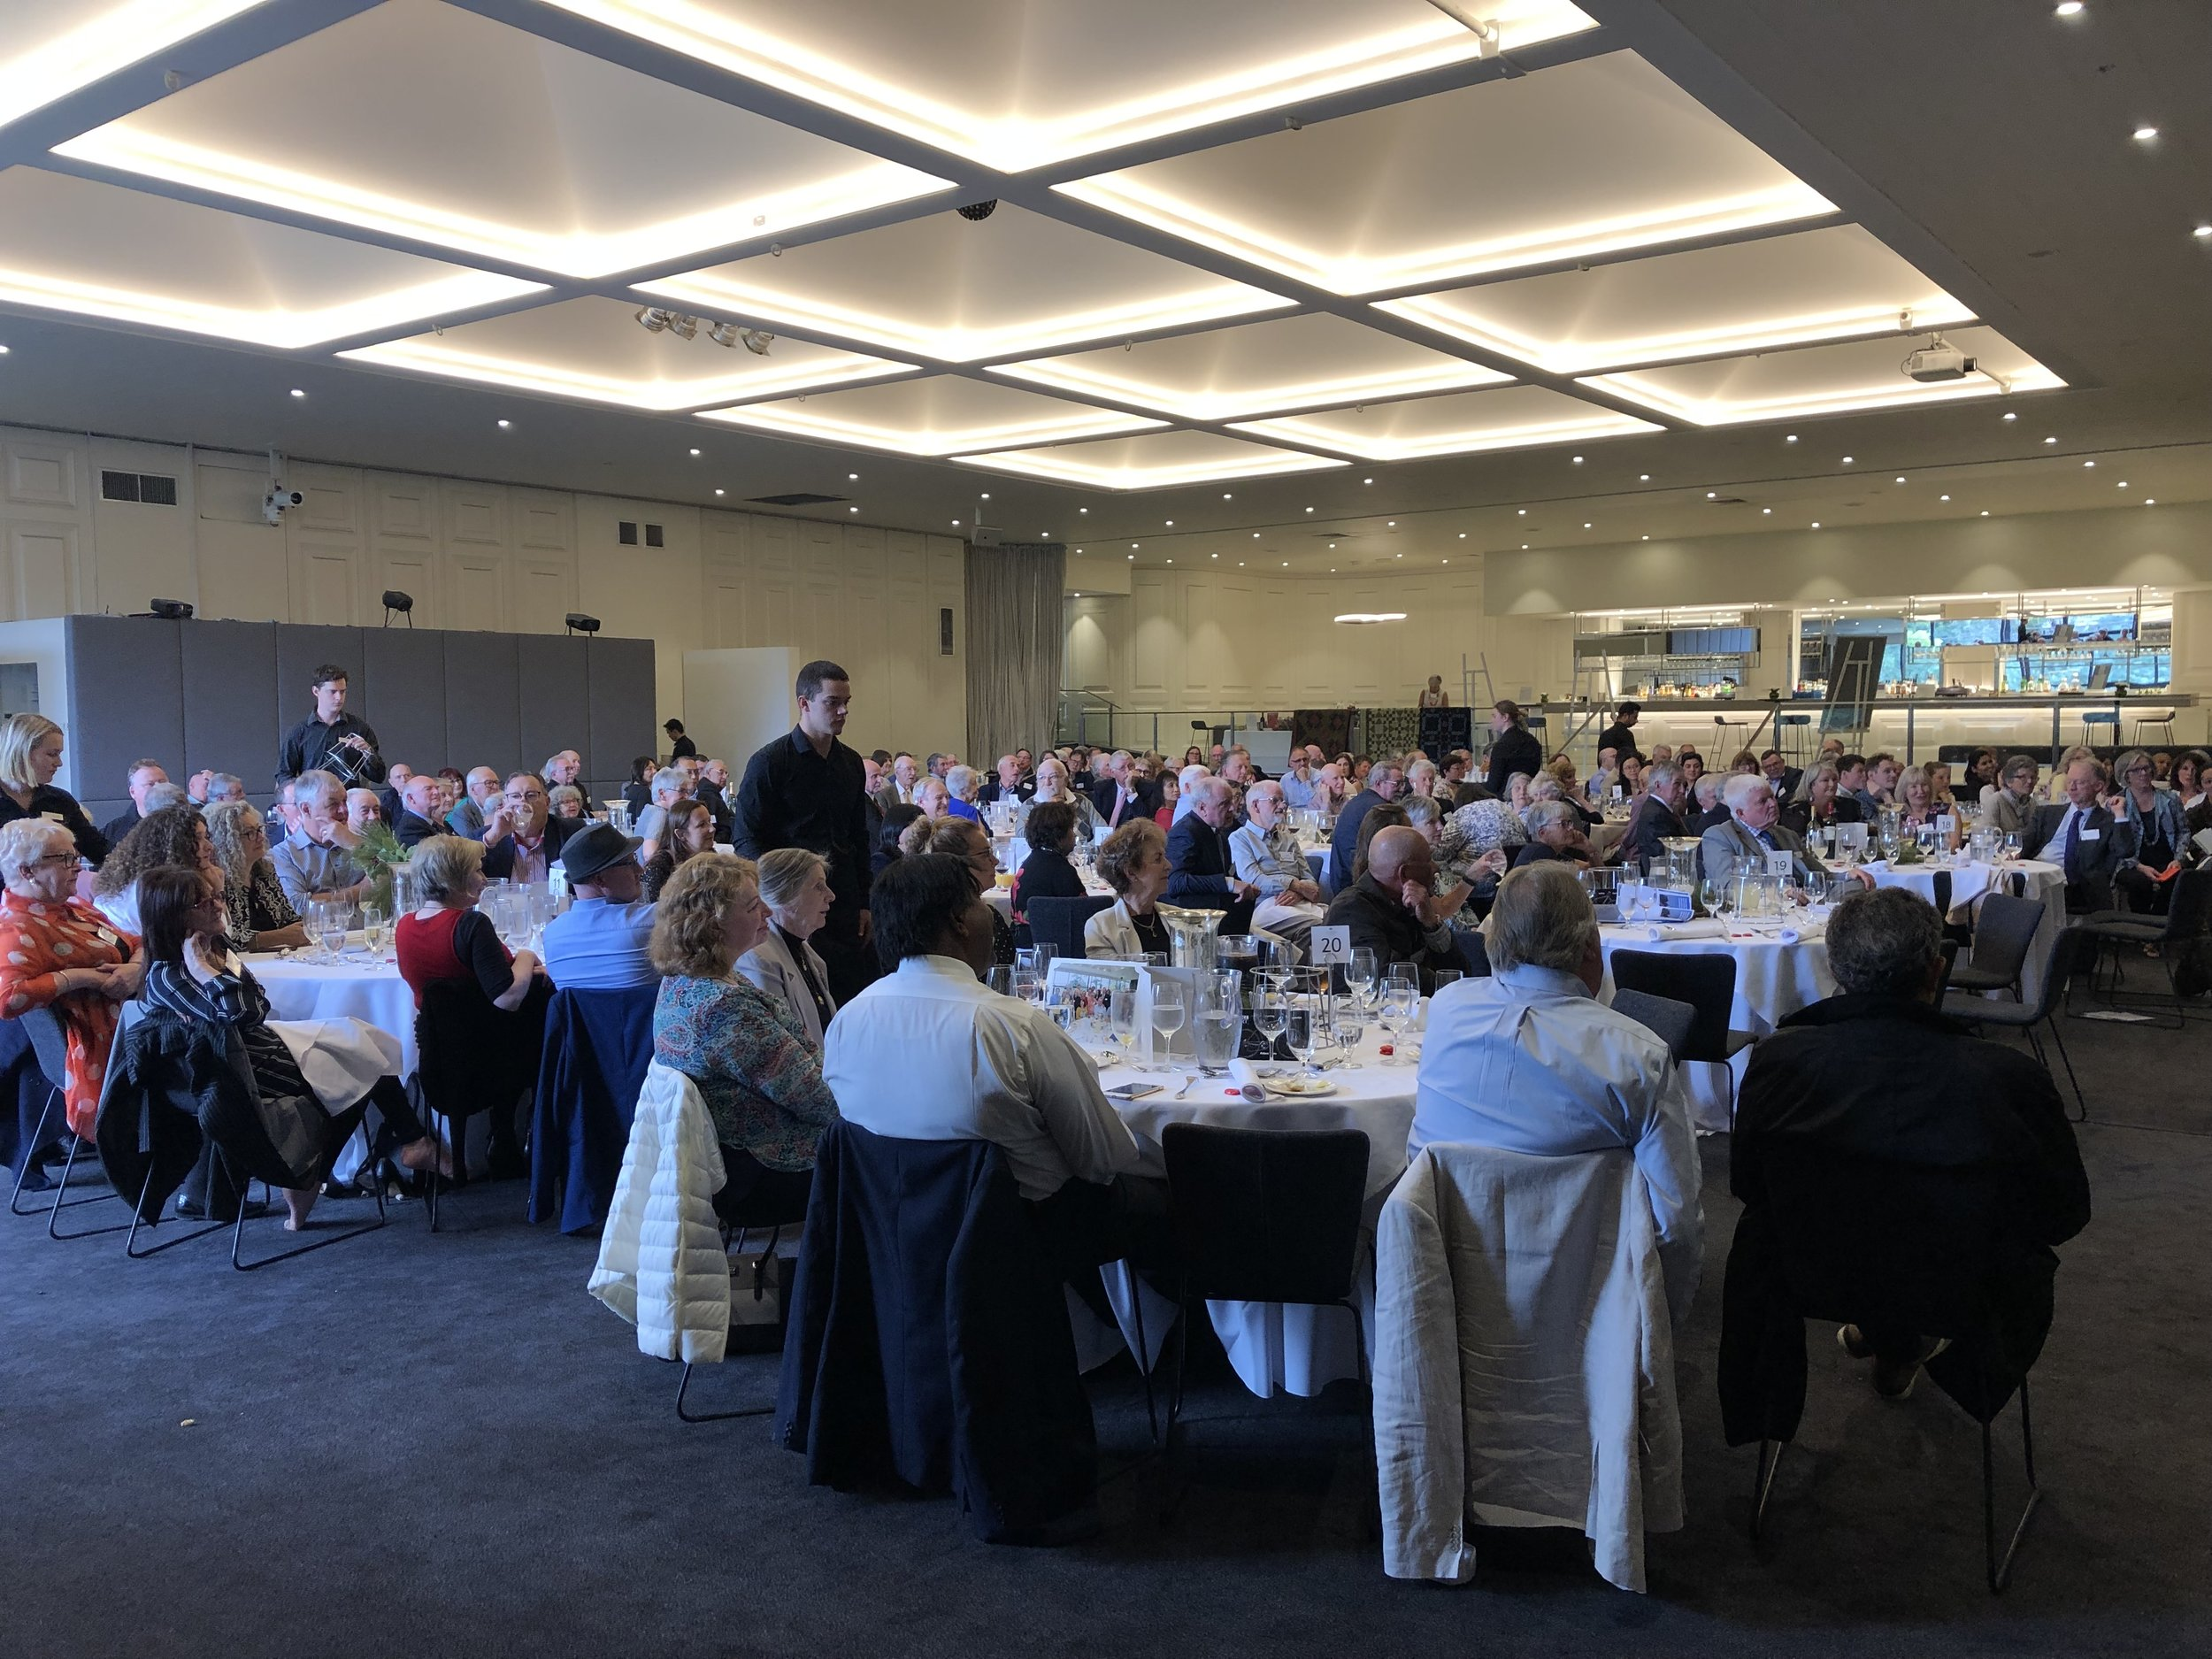 200 attended the lunch at Leonda